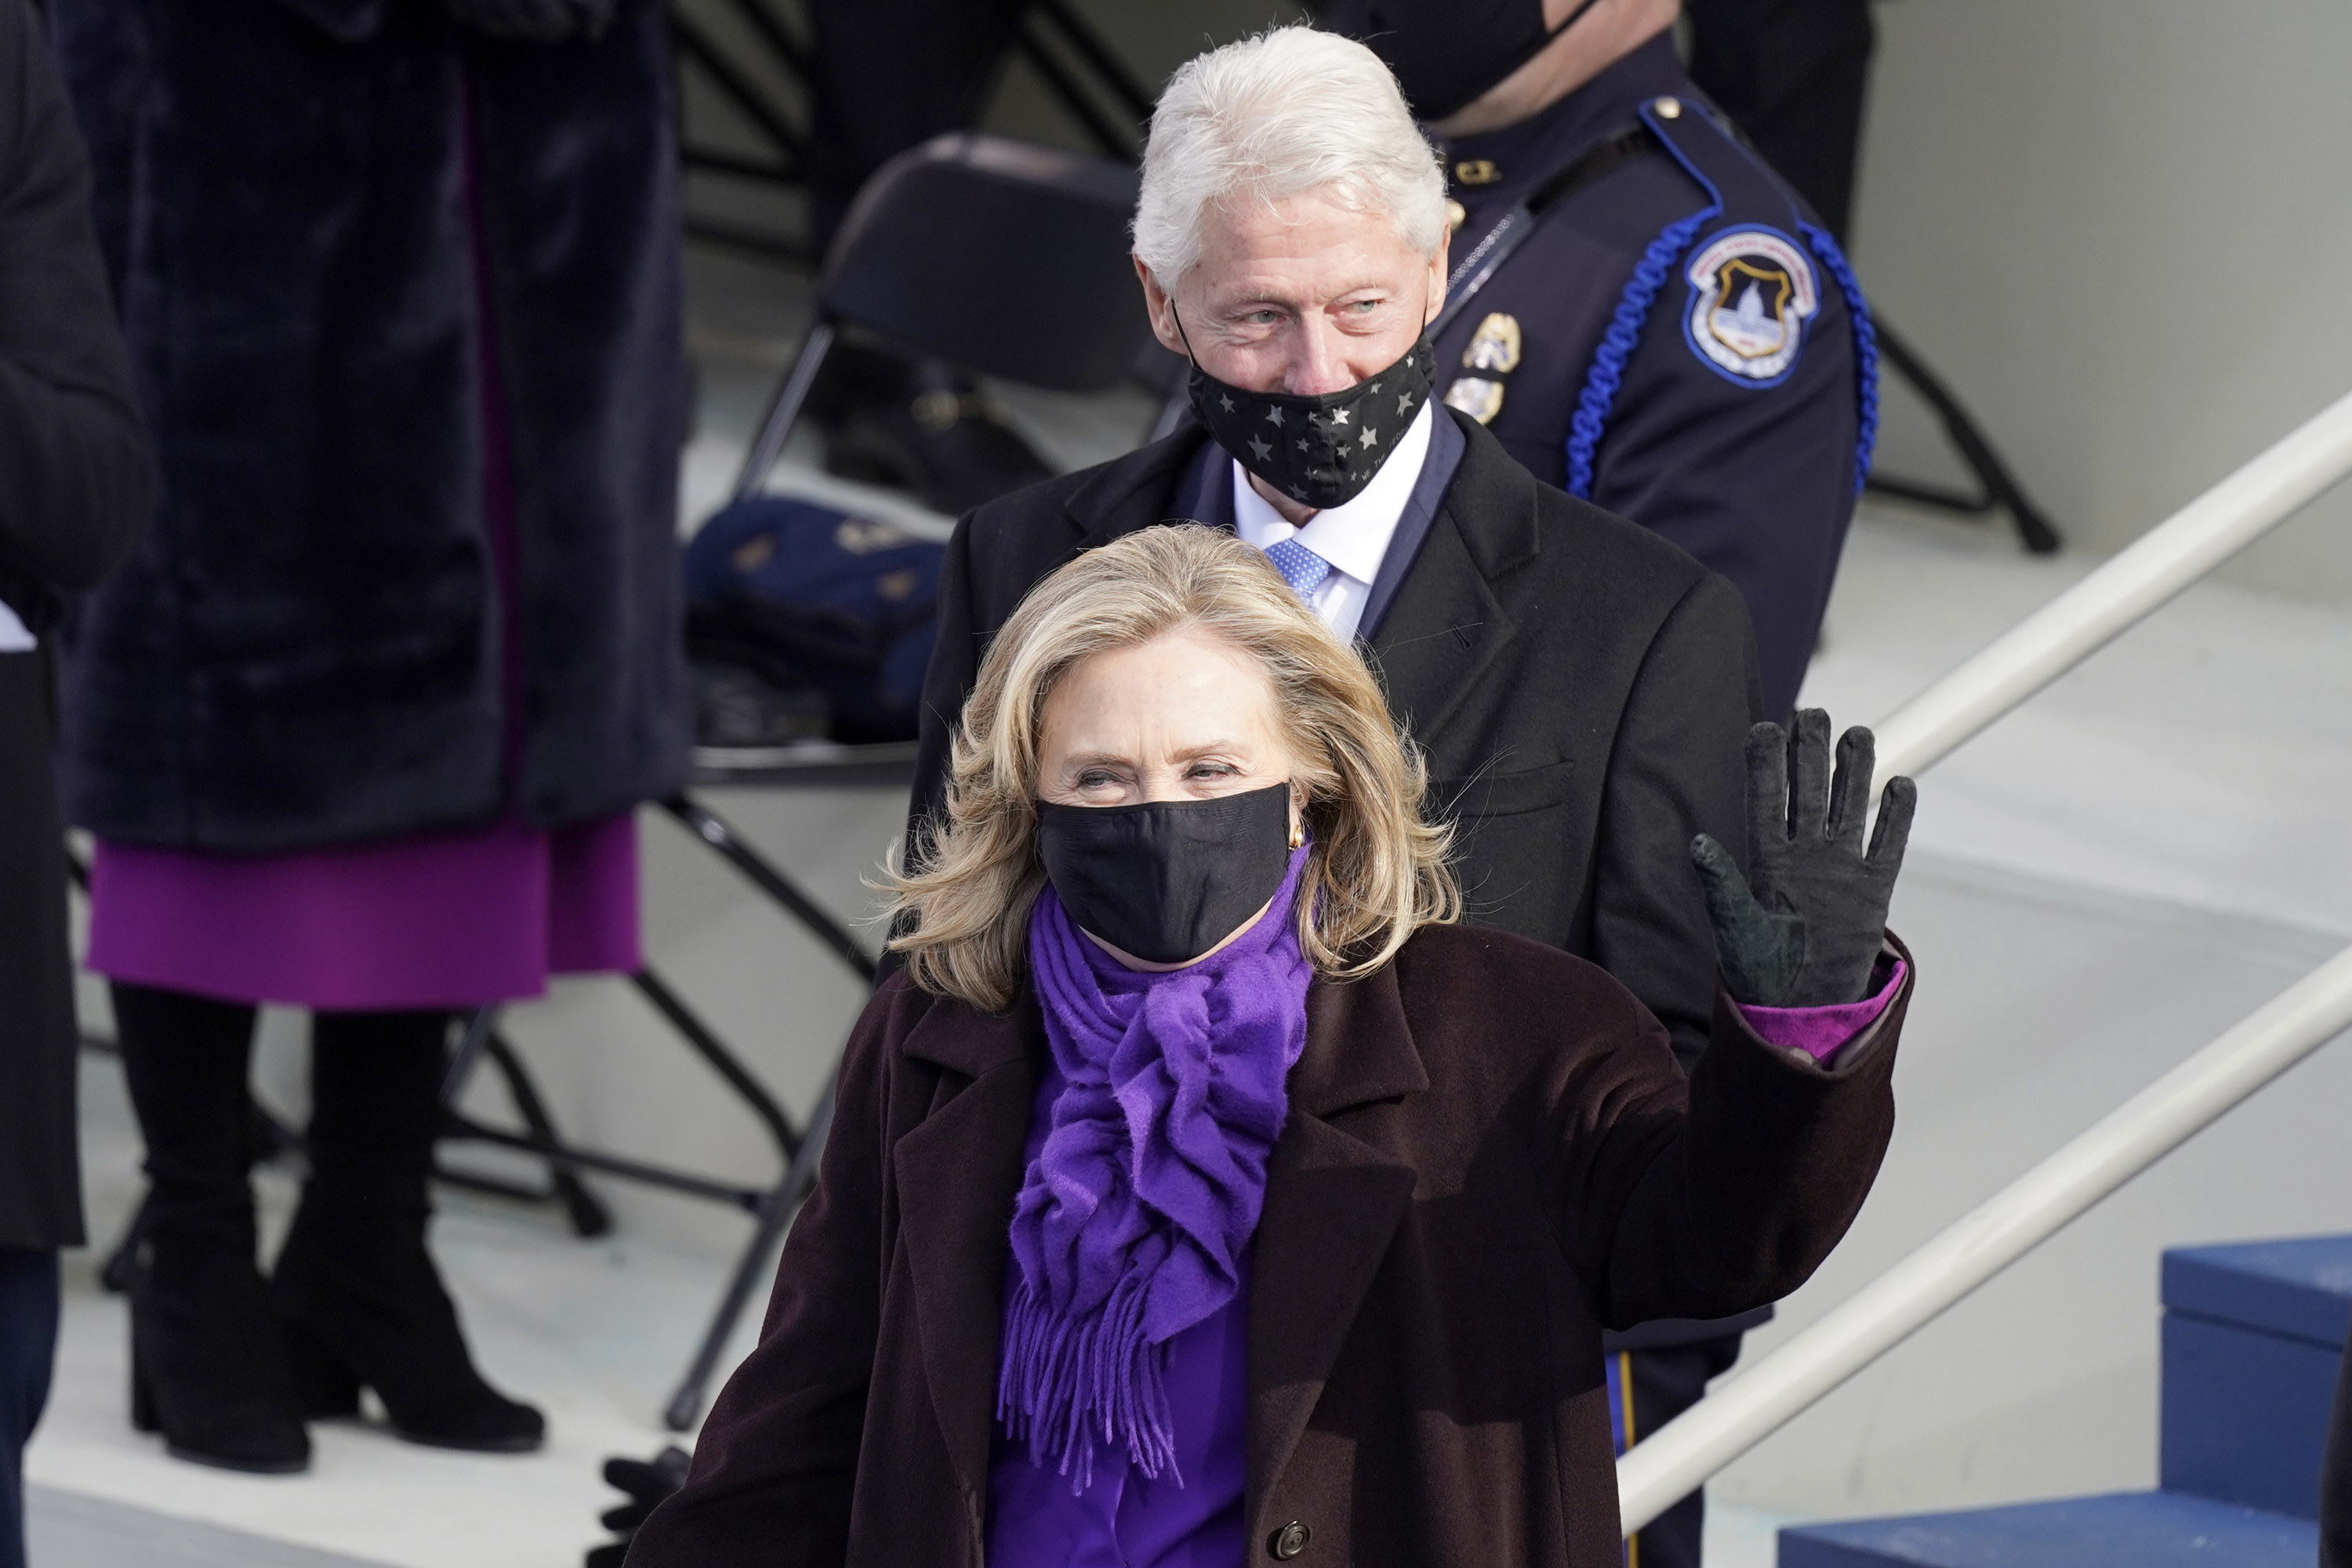 Bill Clinton with a star mask on only his chin and mouth and Hillary Clinton in a black face mask at the inauguration.